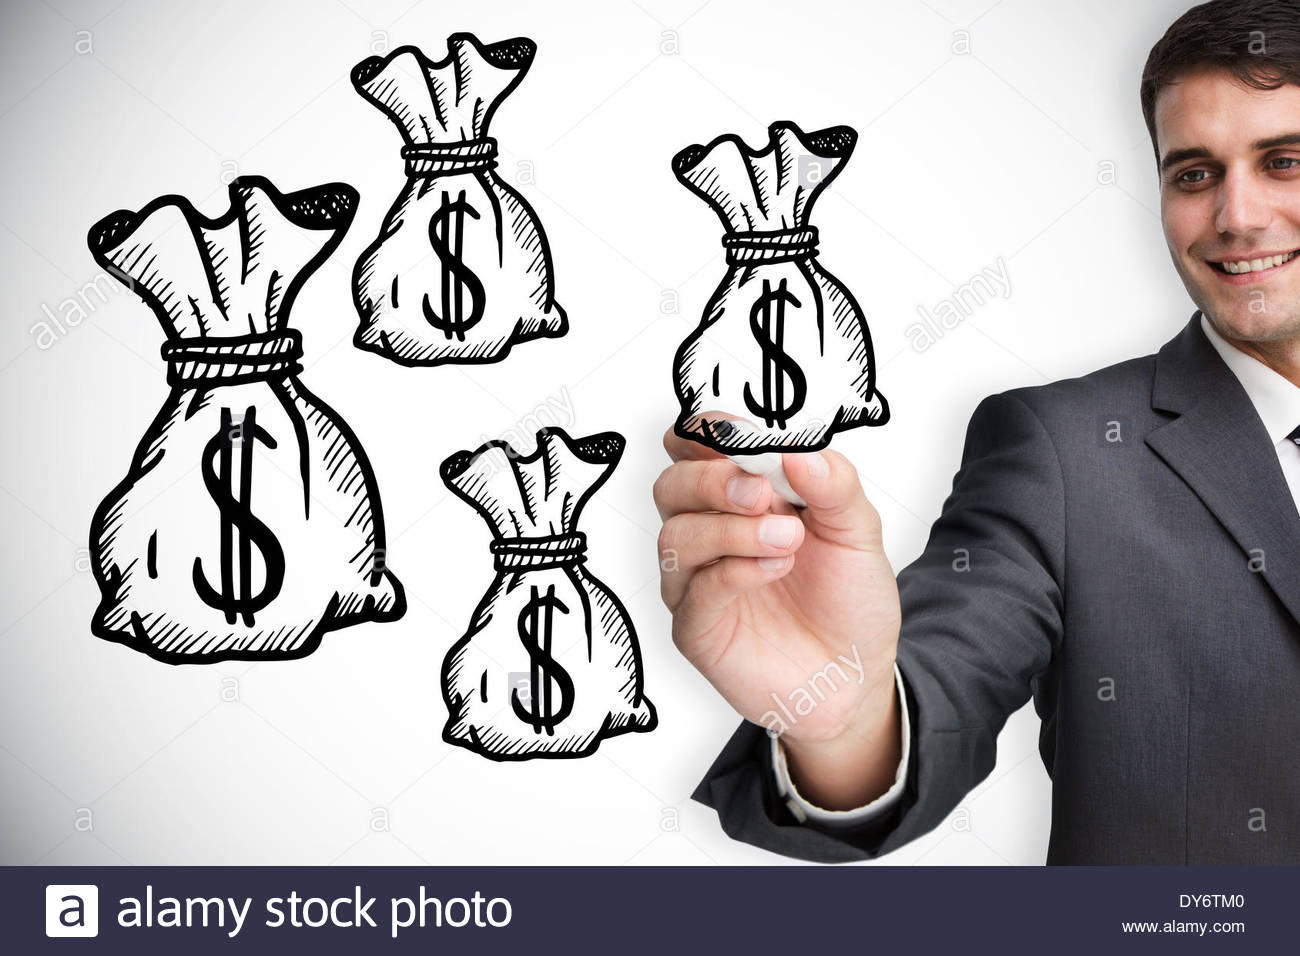 1300x956 Composite Image Of Businessman Drawing Money Bags Stock Photo